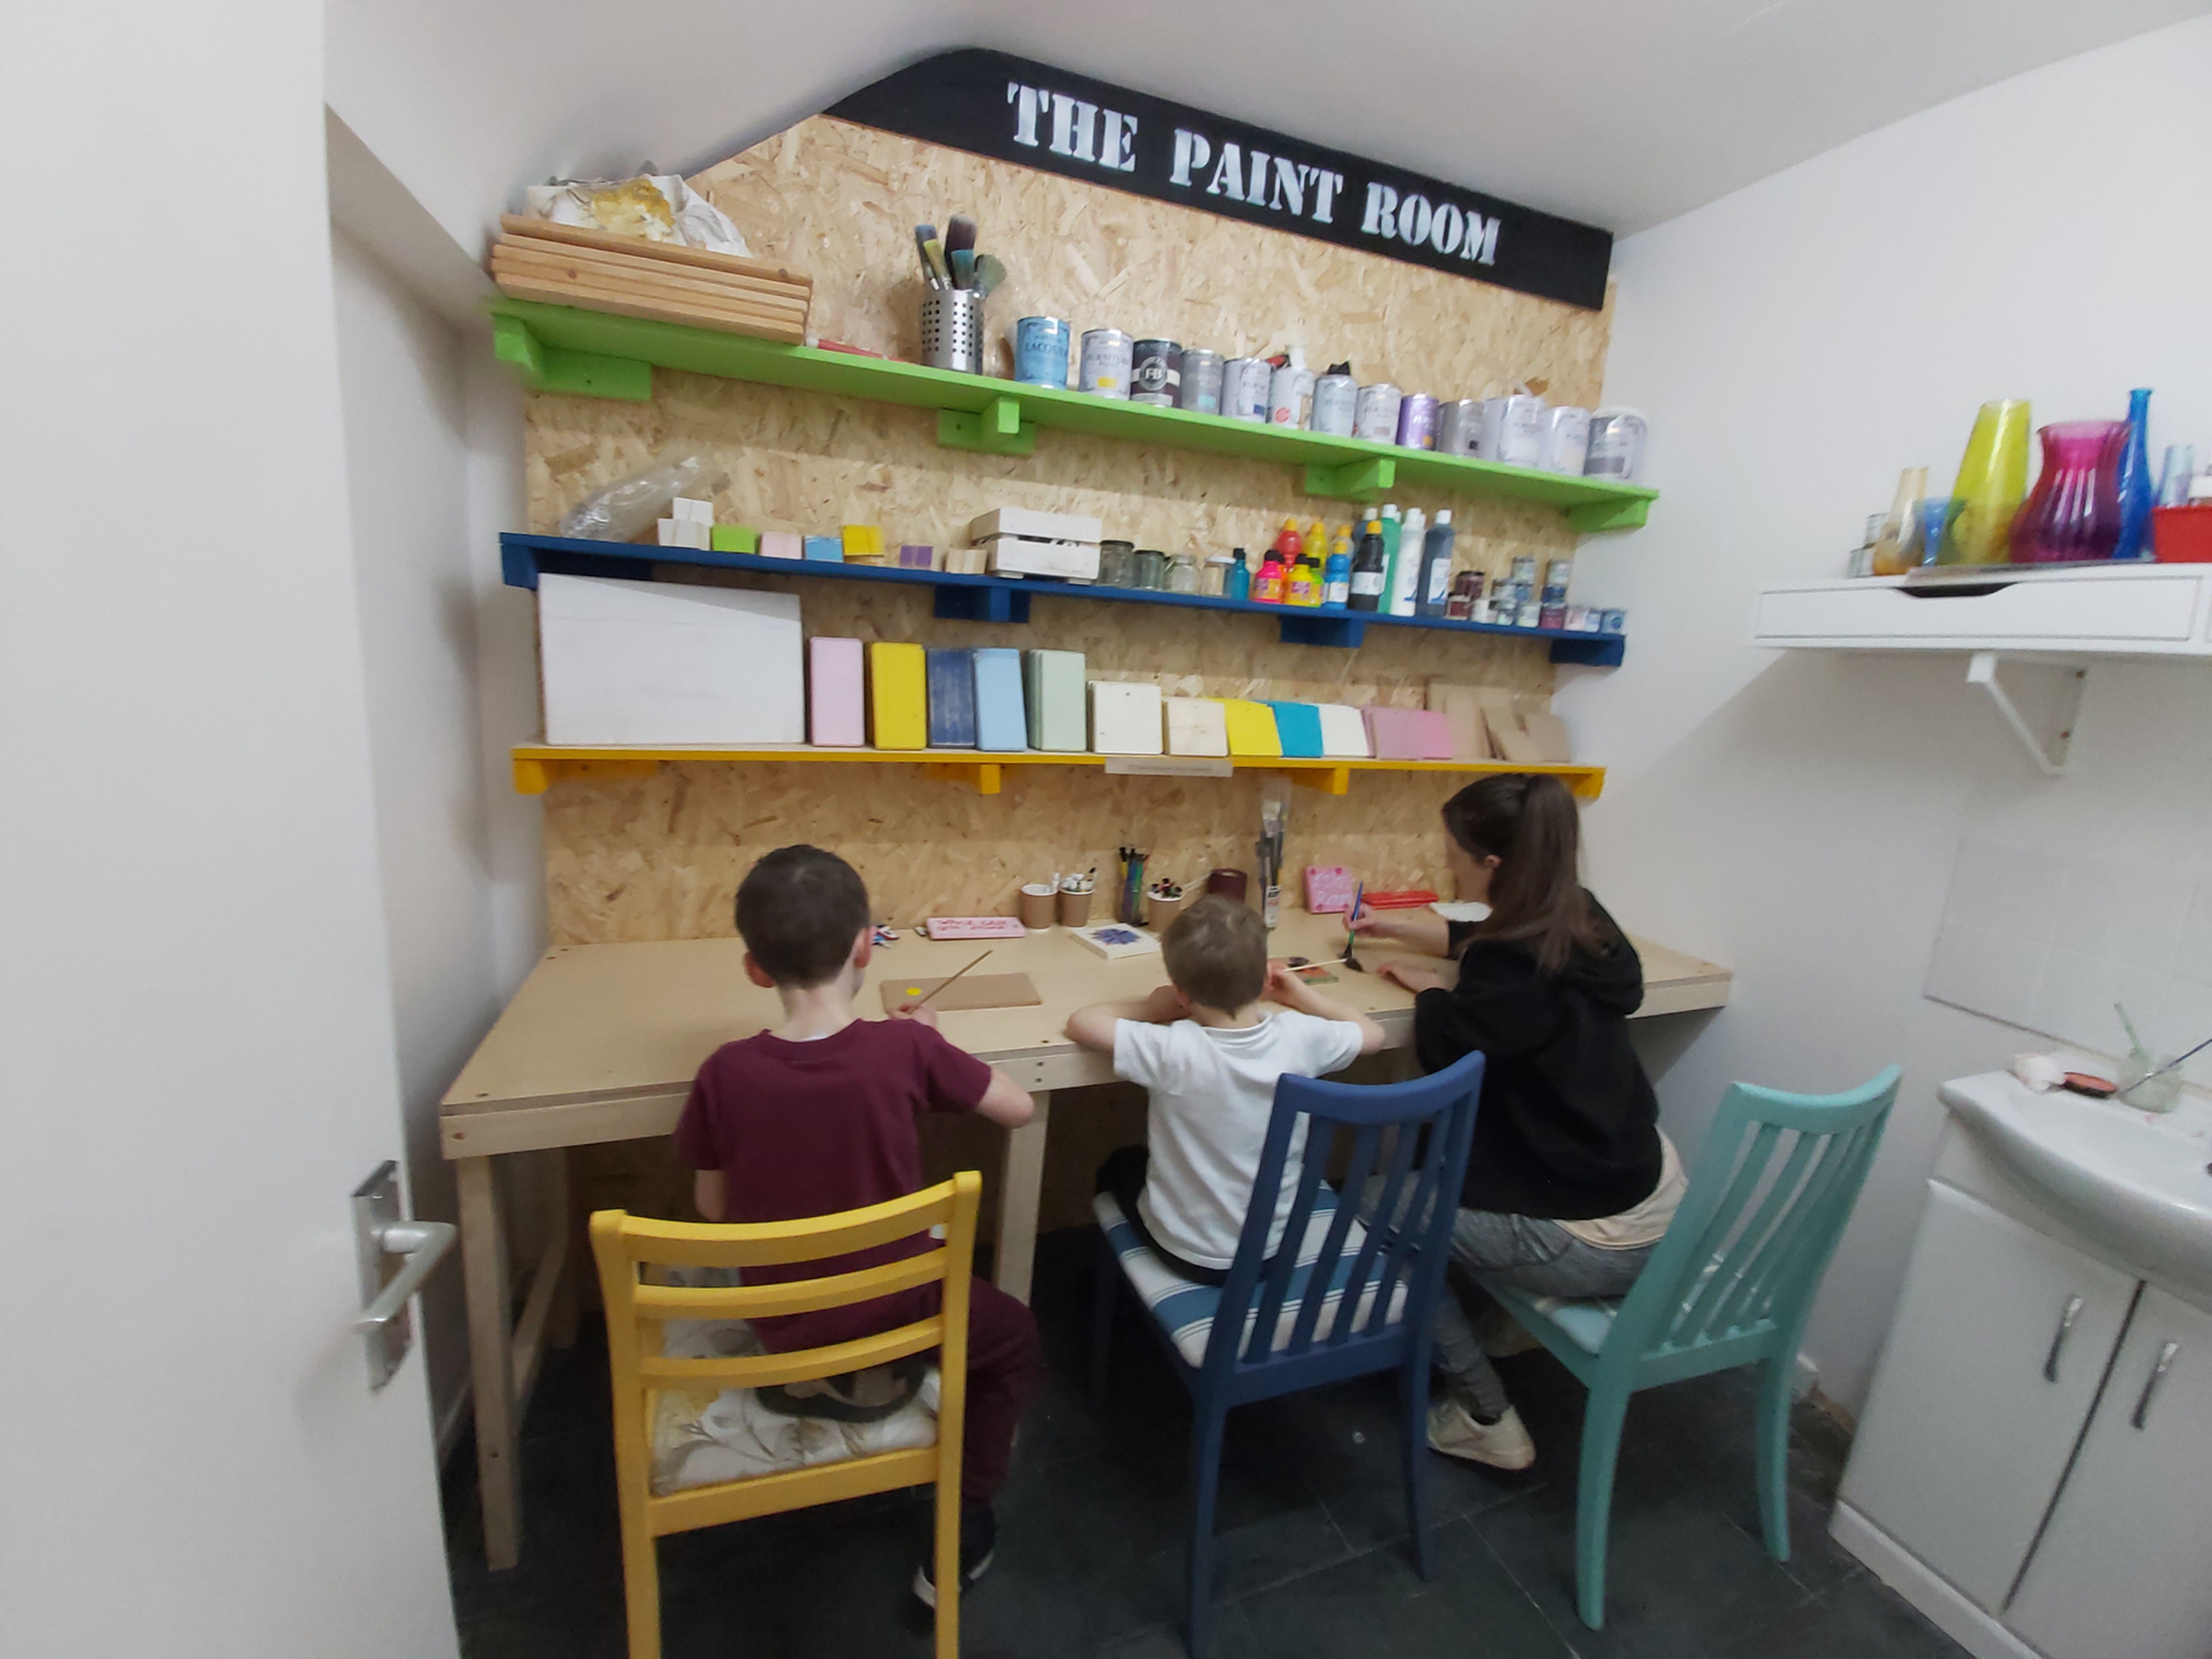 The Paint Room